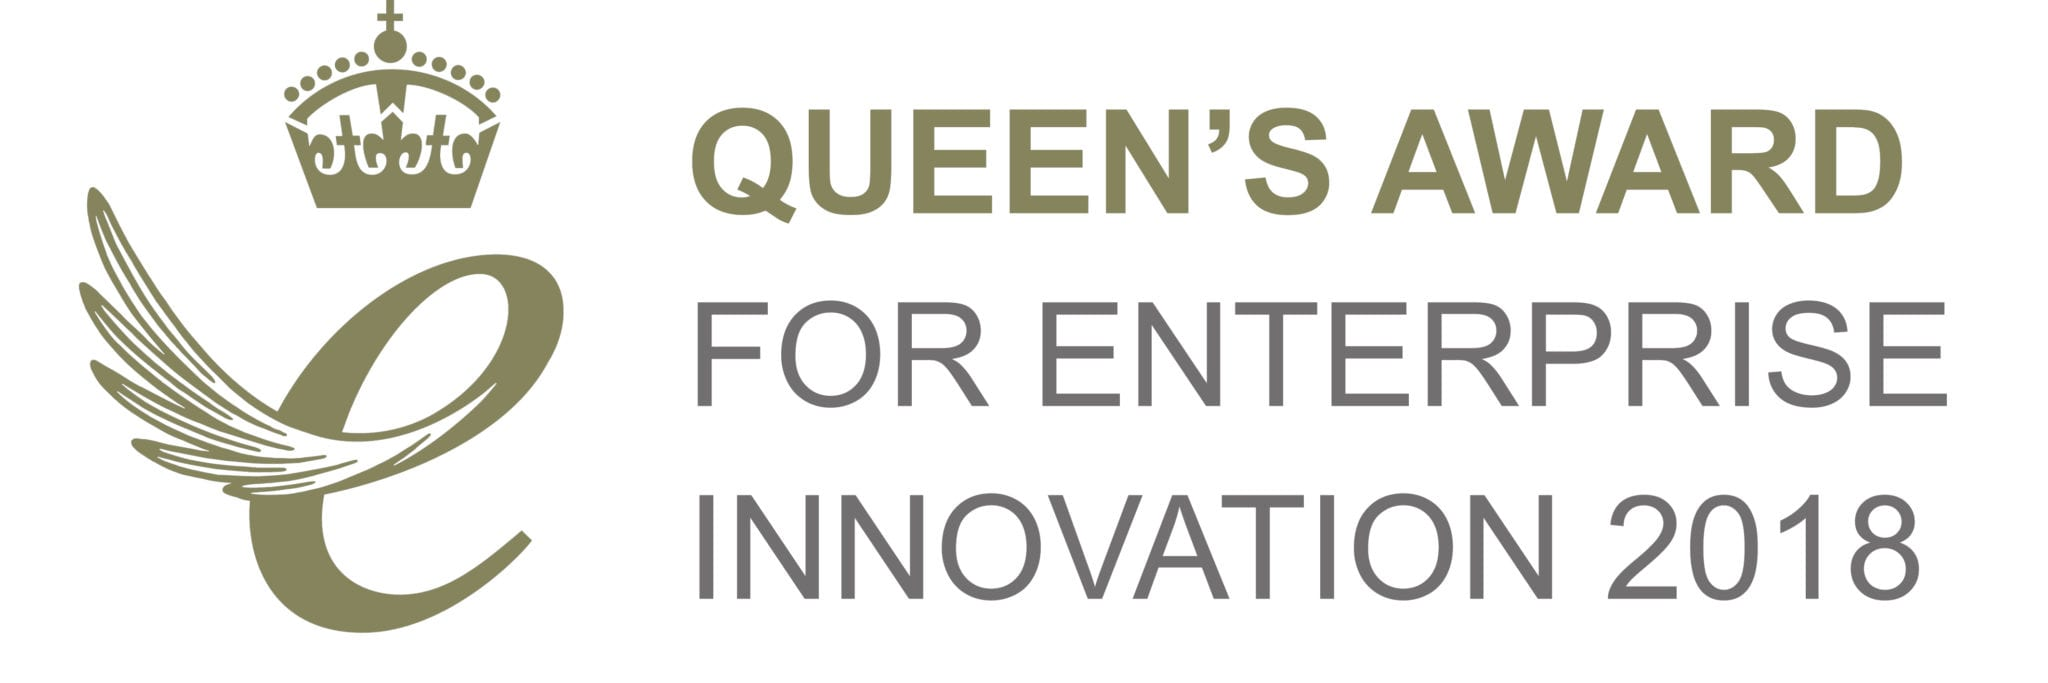 queens-award-for-enterprise-innovation-2018